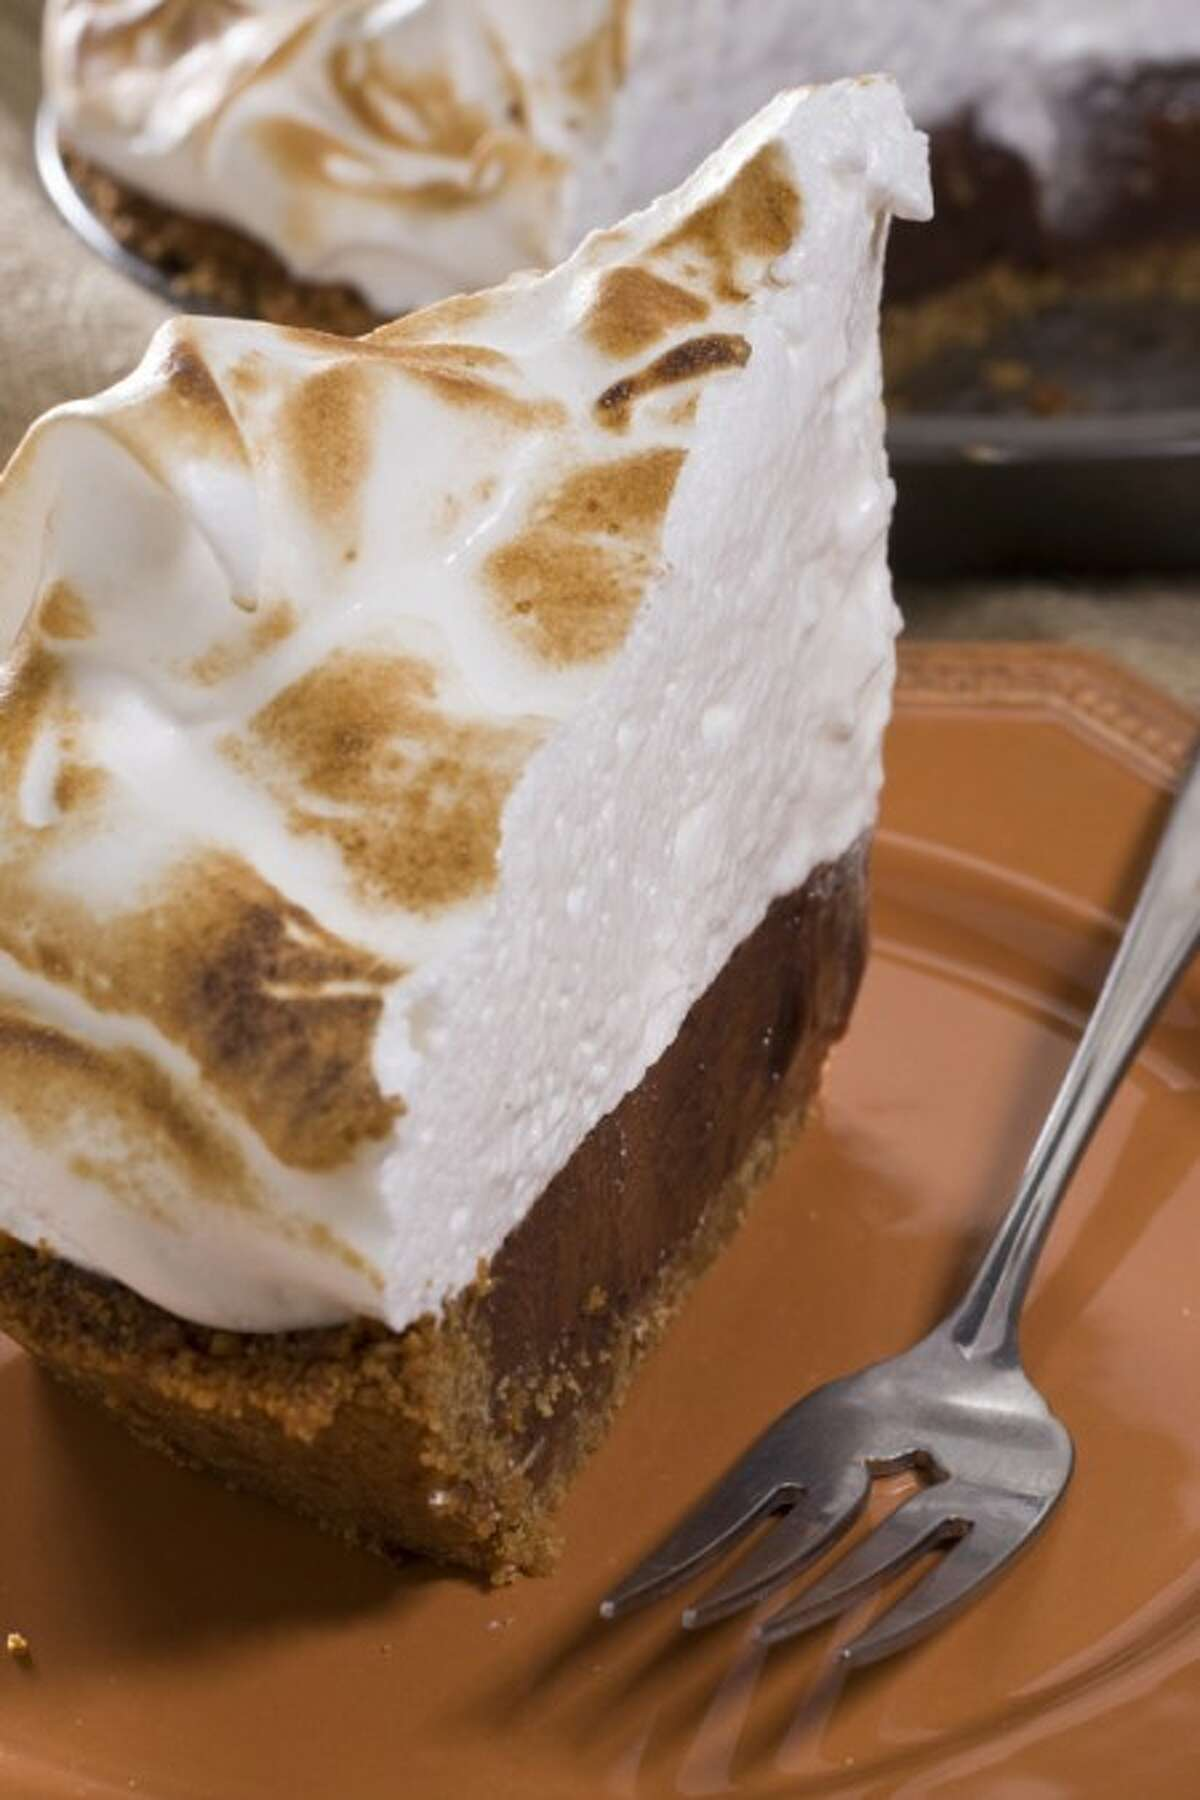 S'mores pie's fresh marshmallow topping gets browned with a small kitchen torch or can be broiled in the oven. (AP Photo/Larry Crowe)